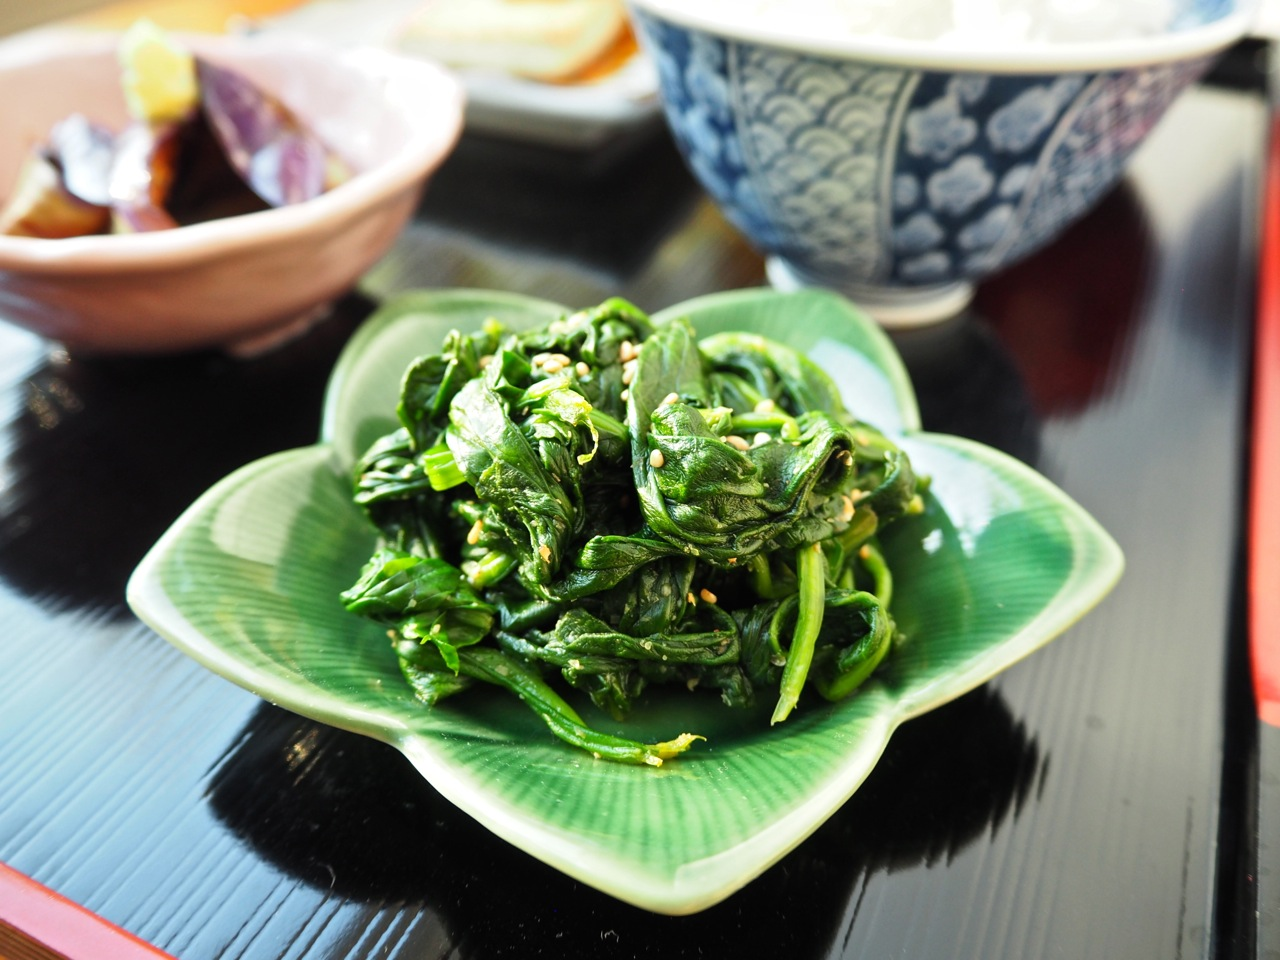 Hourenso no goma-ae ほうれん草の胡麻和え. Spinach with sesame seed.